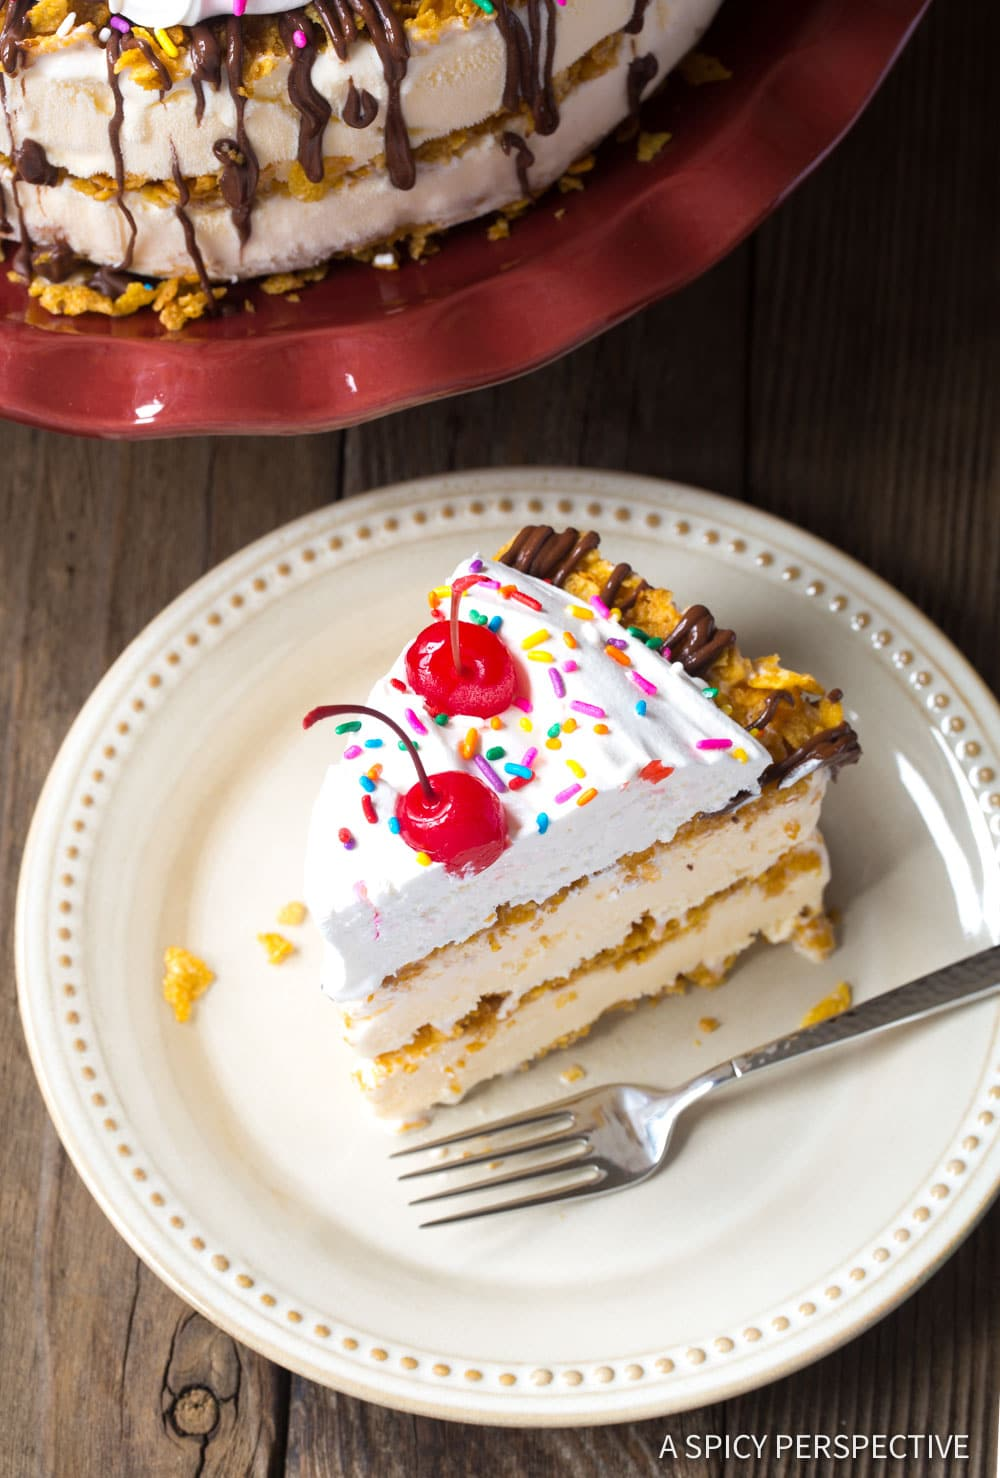 Perfect Mexican Fried Ice Cream Cake Recipe #ASpicyPerspective